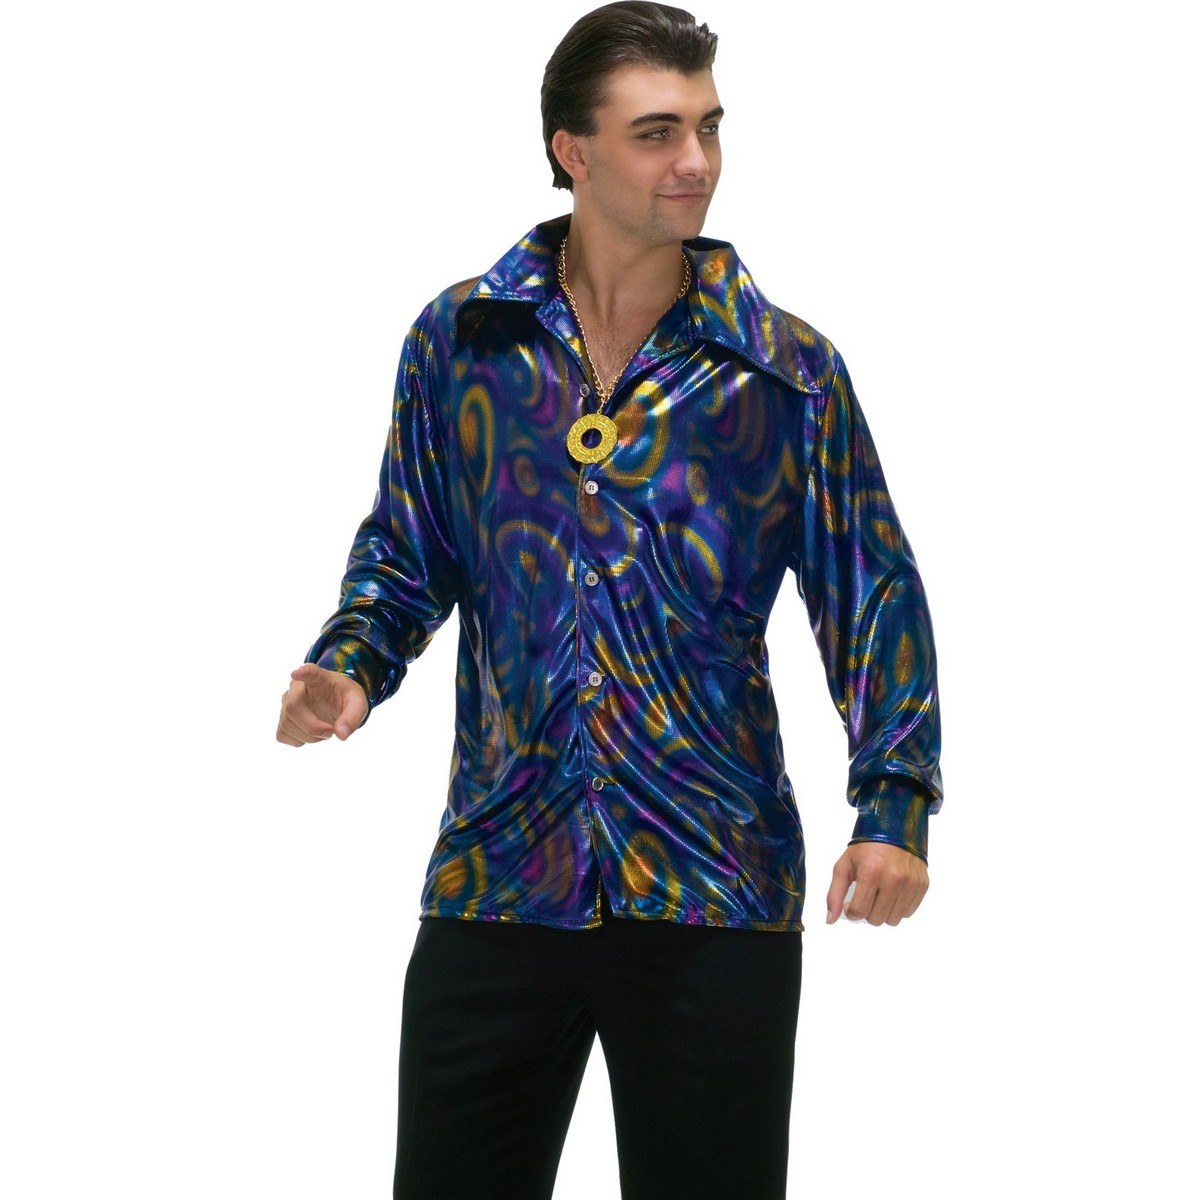 60s 70s Mens Blue Dynomite Disco Shirt Groove Adult Halloween Costume